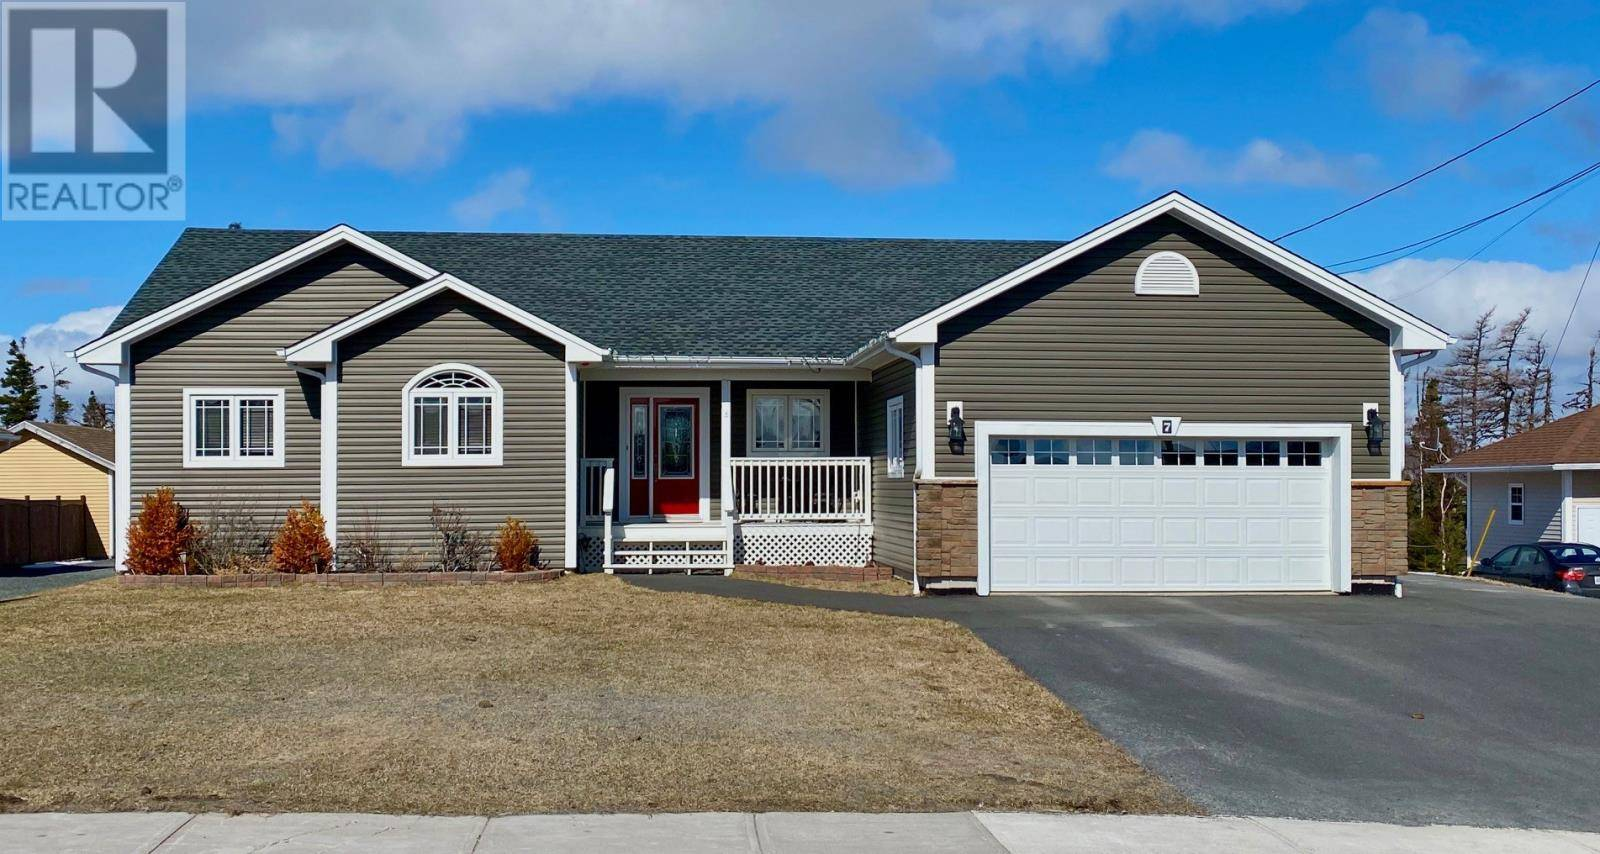 House for sale at 7 Syenite Rd Clarenville Newfoundland - MLS: 1212403